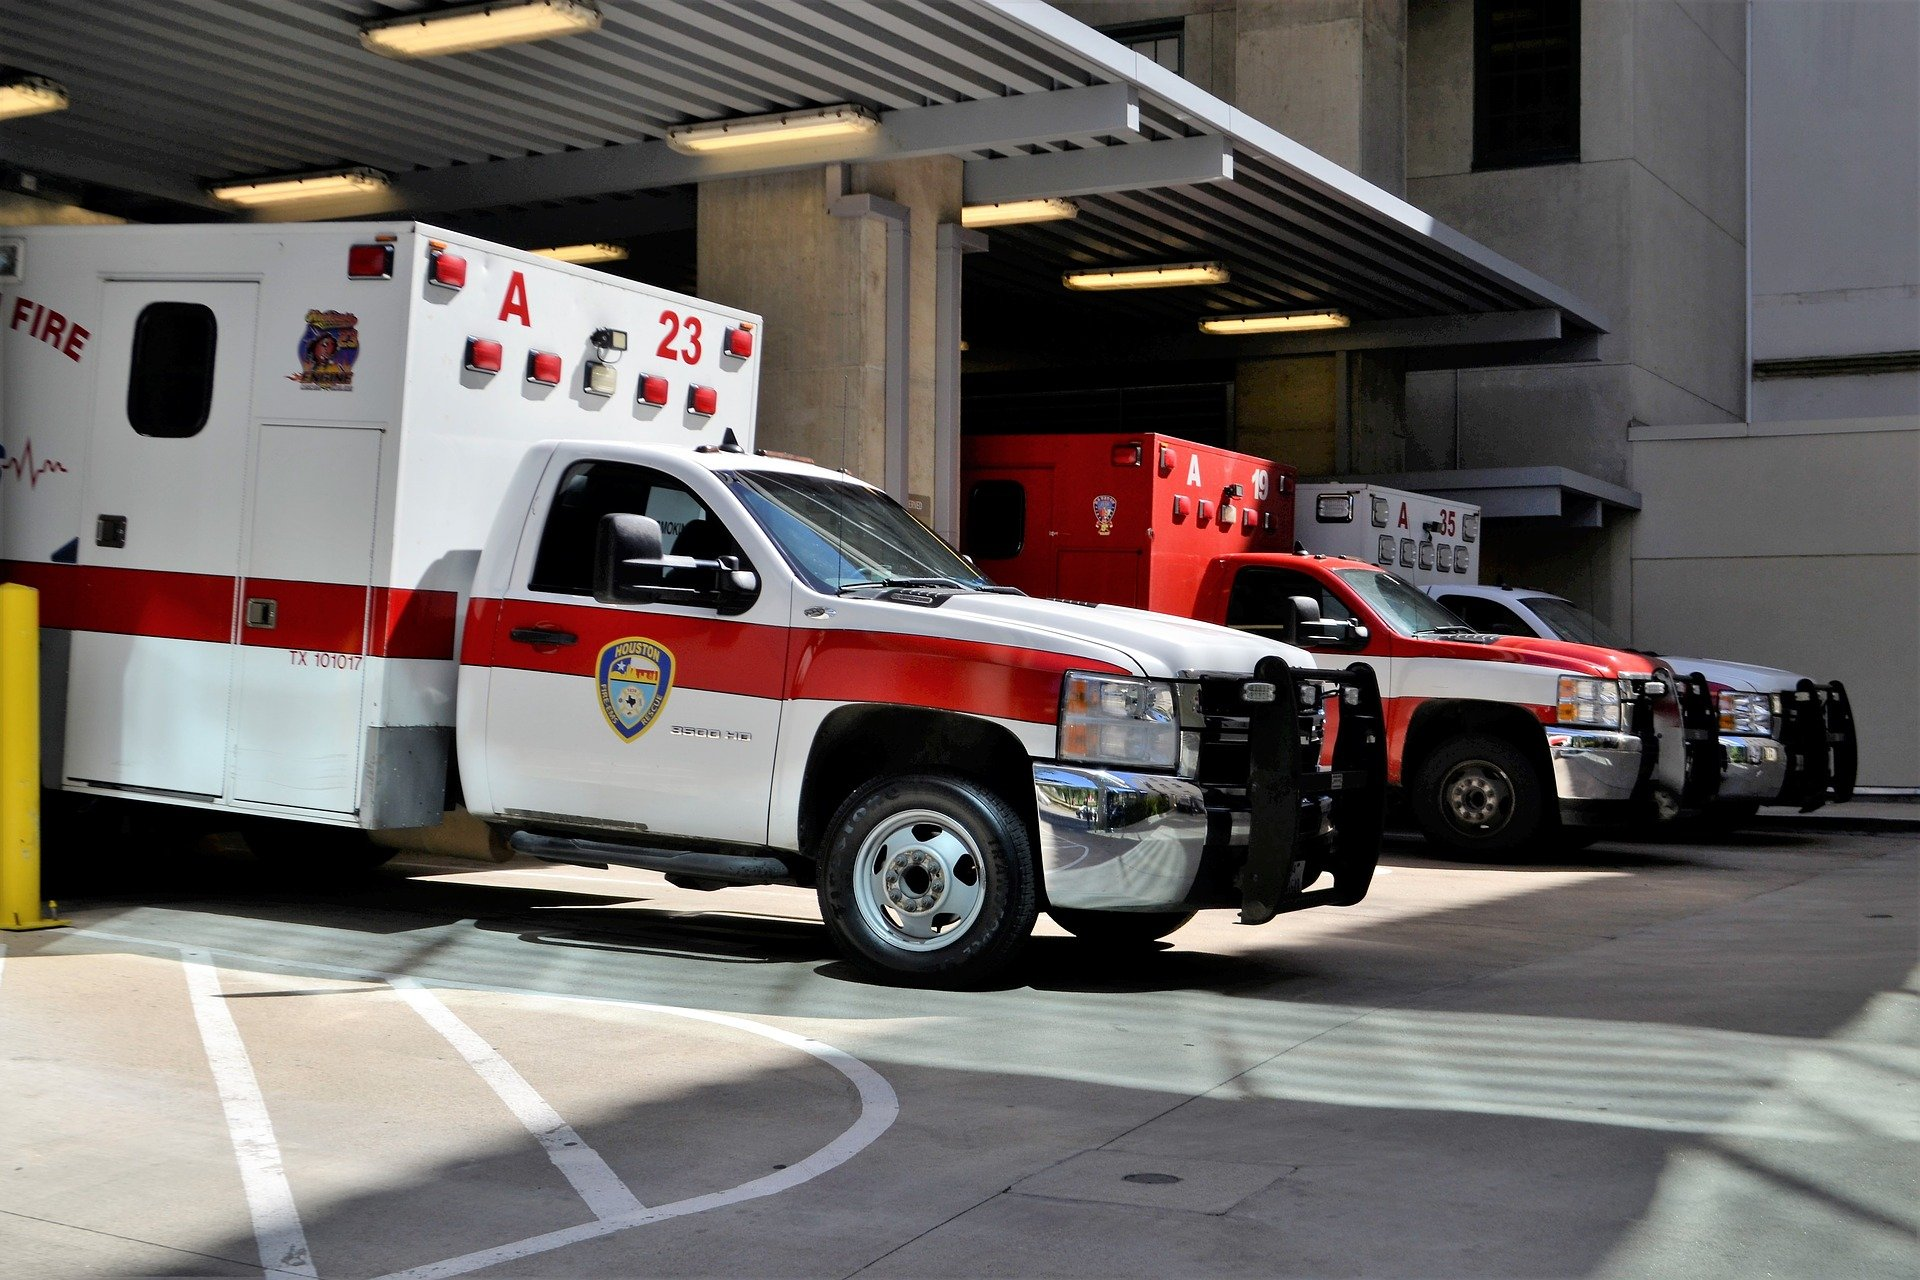 A picture of ambulances parked at the hospital   Source: Pixabay